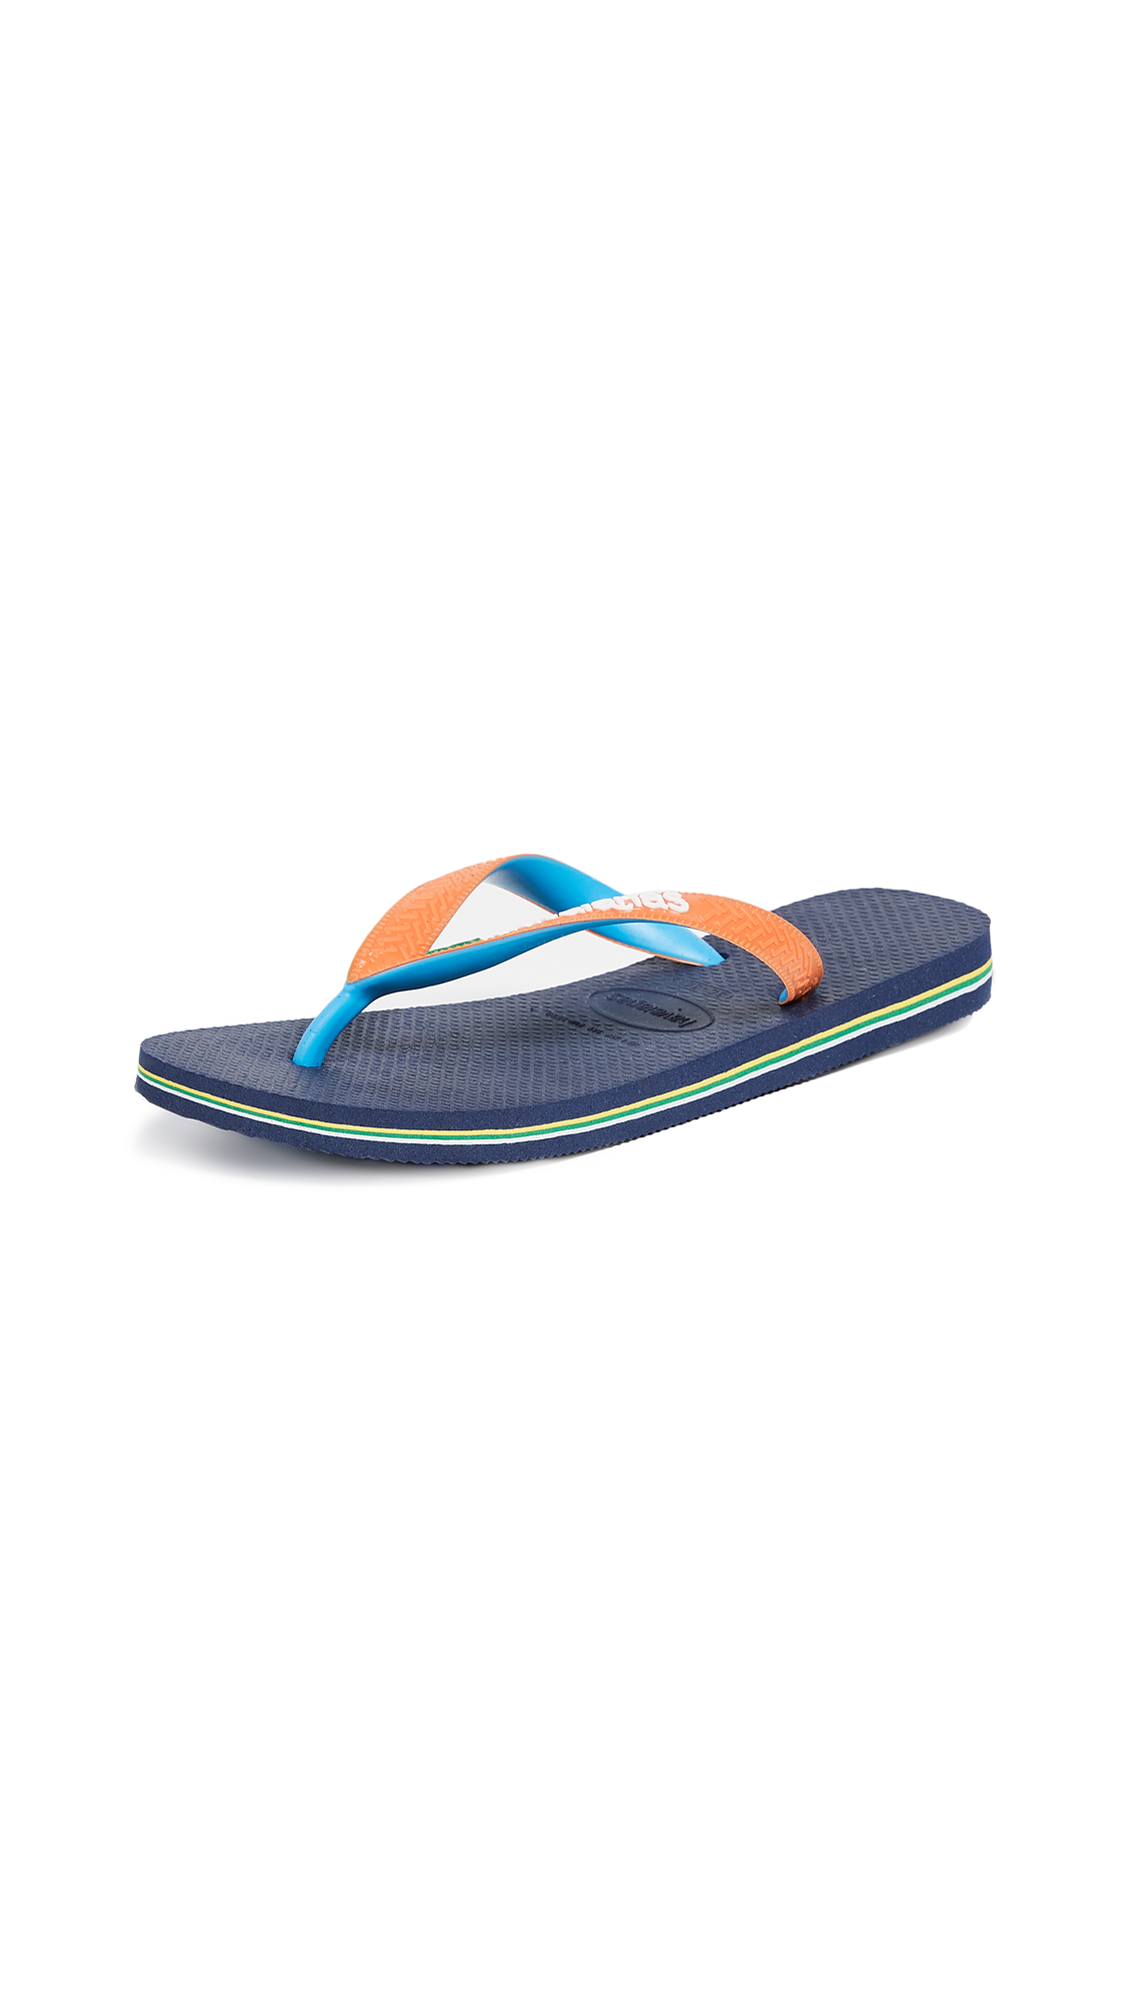 Havaianas Brazil Mix Flip Flops - Navy Blue/Neon Orange